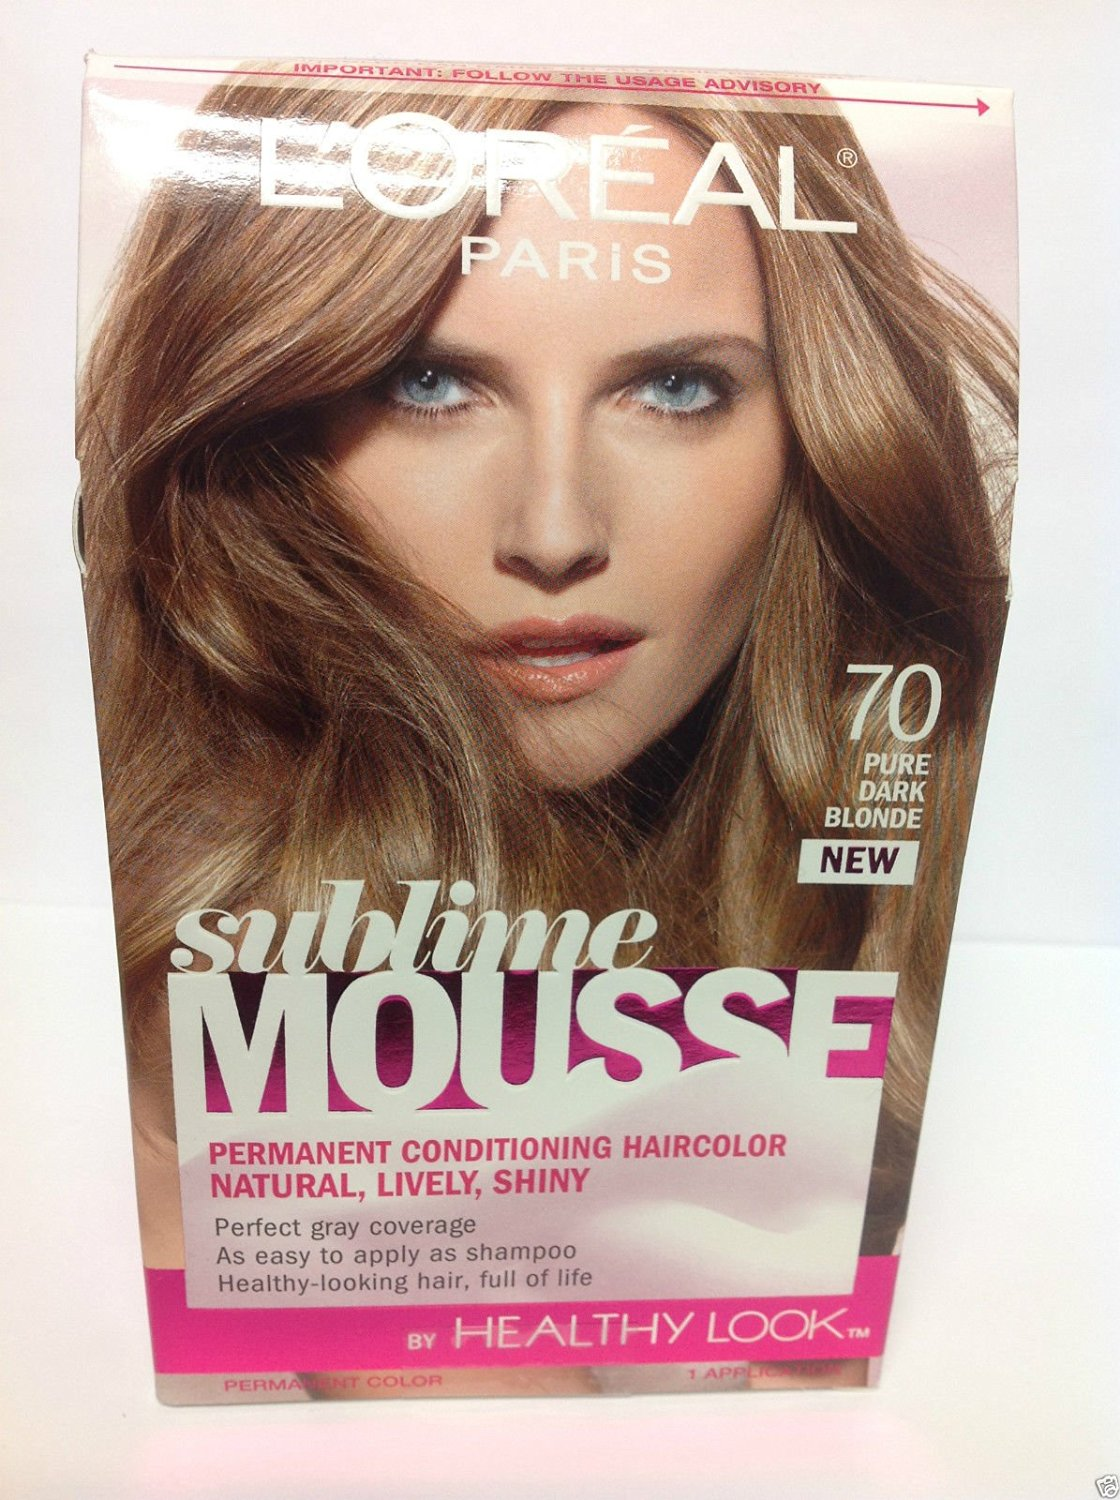 L Oreal Sublime Mousse By Healthy Look Hair Color Pure Dark Blonde 70